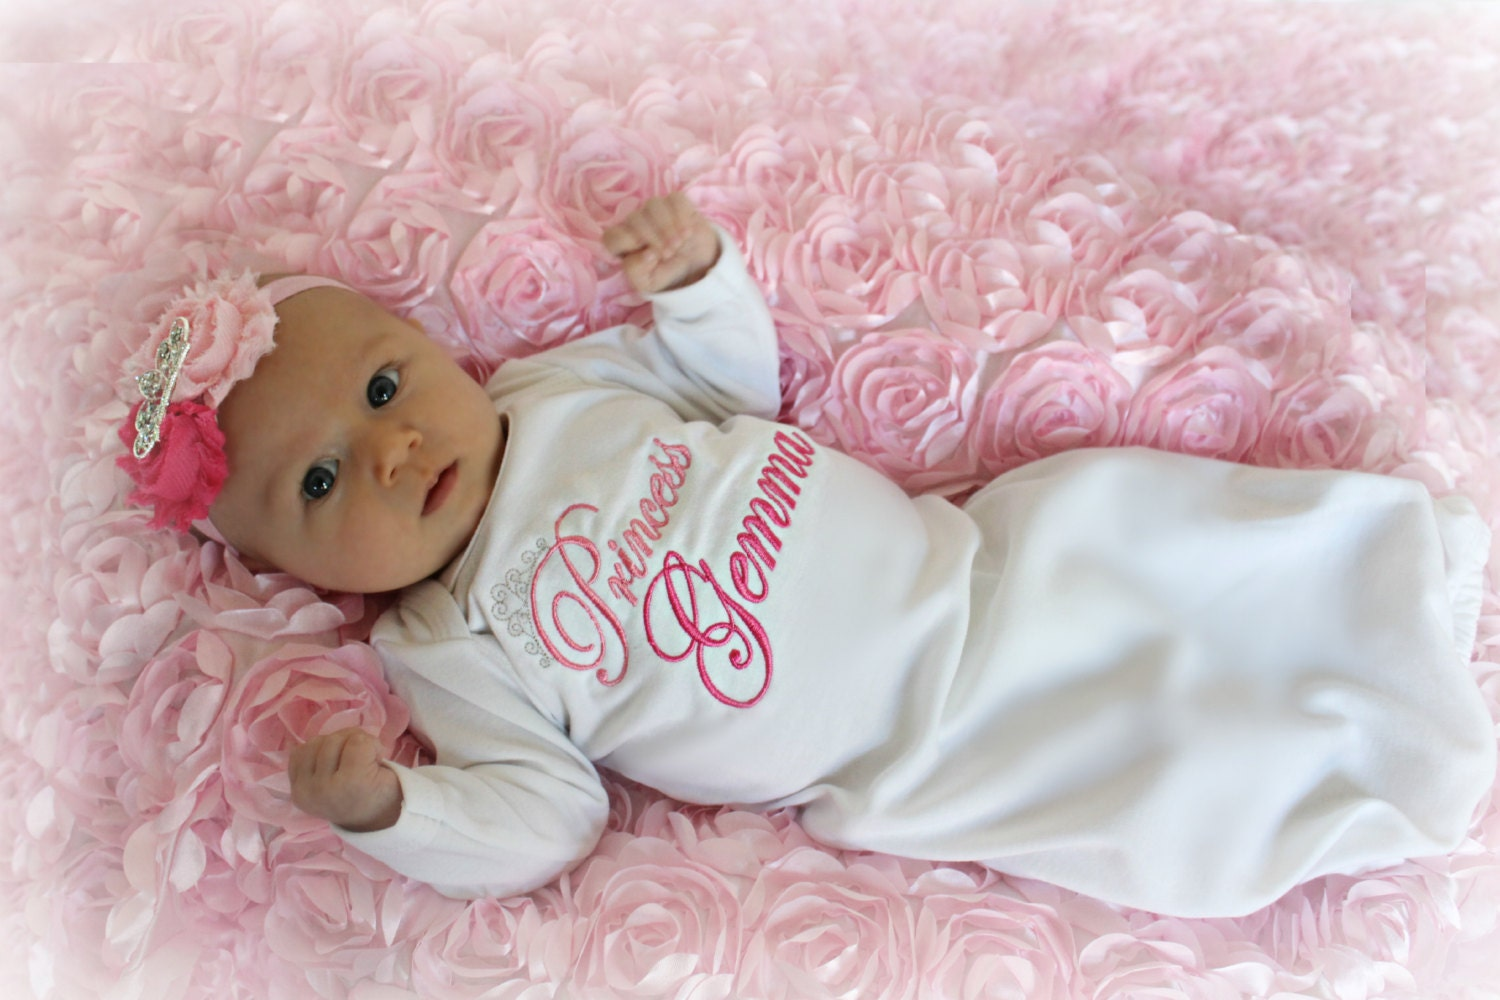 Baby Girl Clothes Personalized Baby Gift Newborn Girl Take